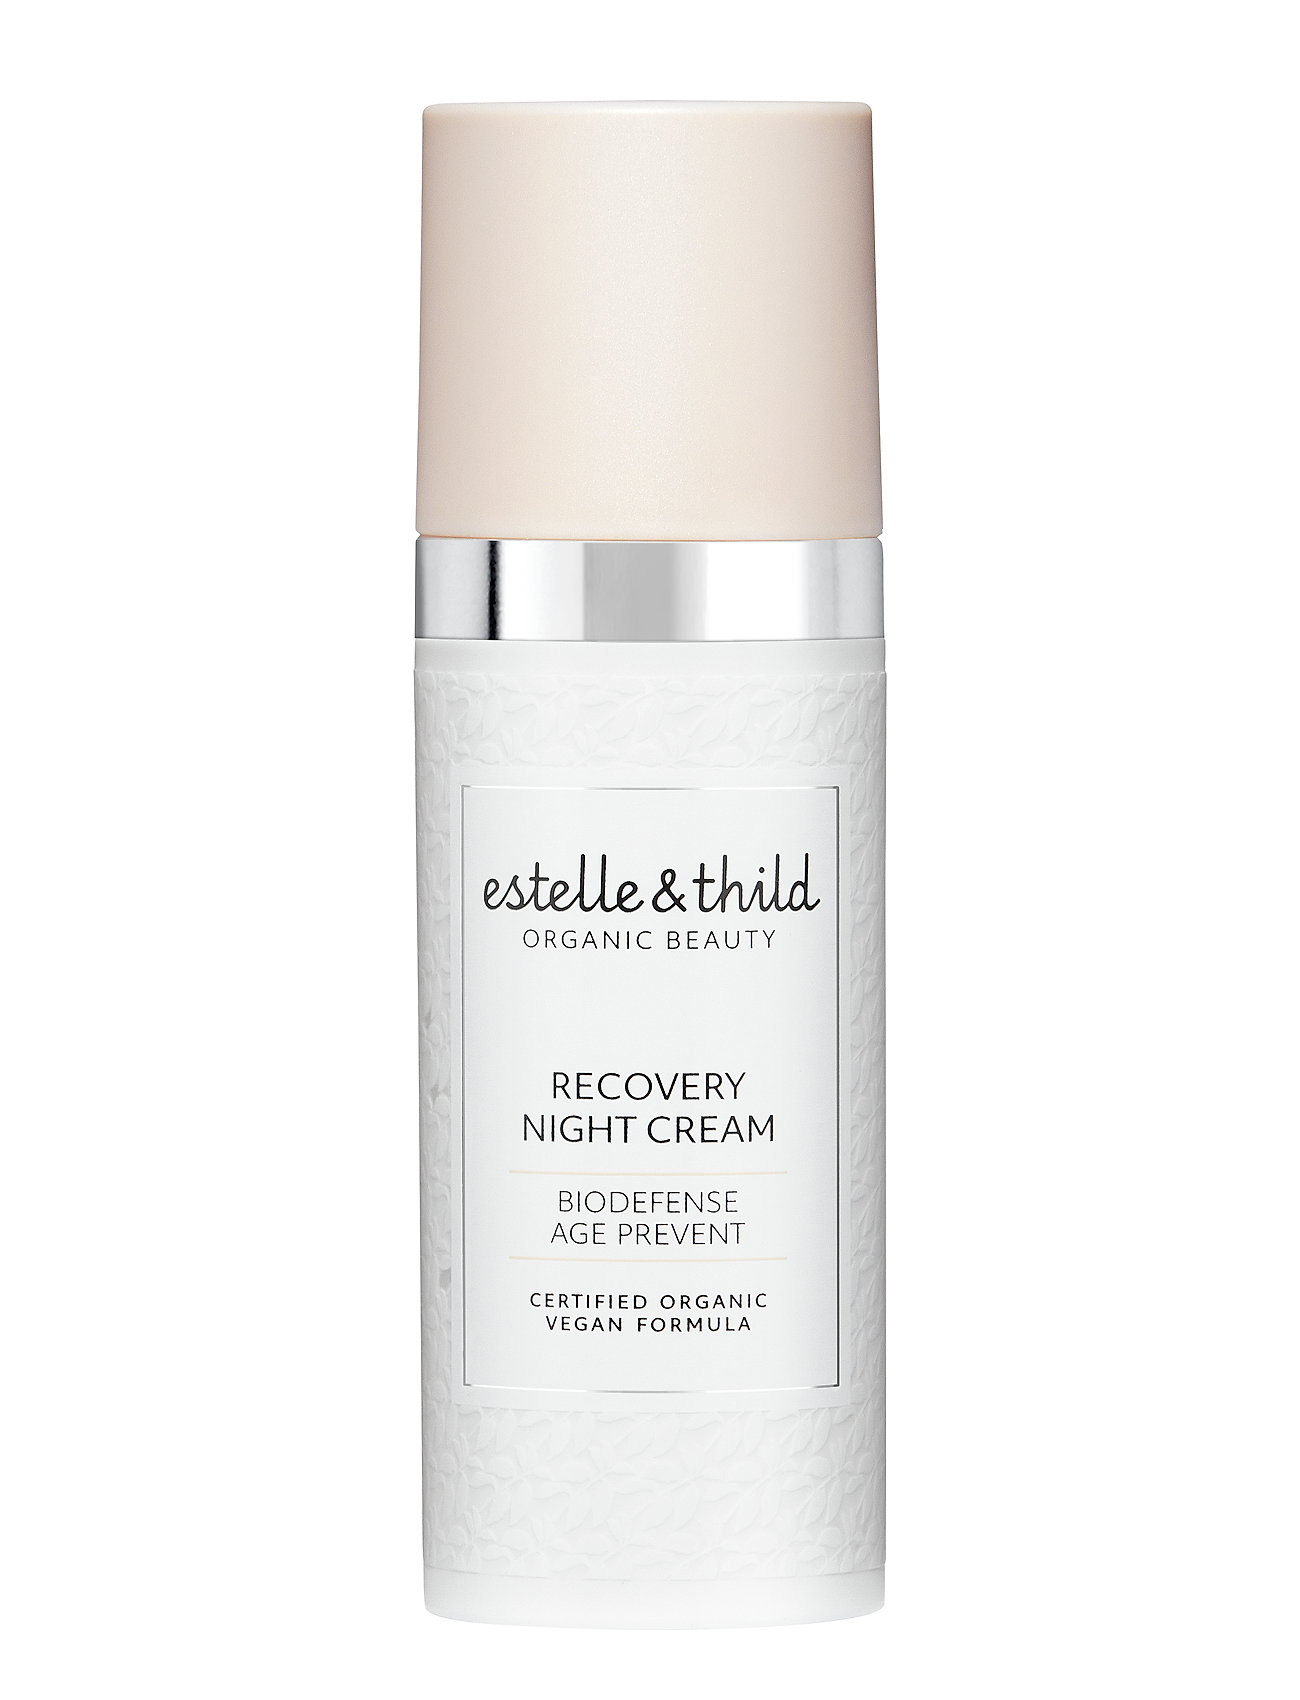 Image of Biodefense Recovery Night Cream Beauty WOMEN Skin Care Face Night Cream Nude Estelle & Thild (3115267209)